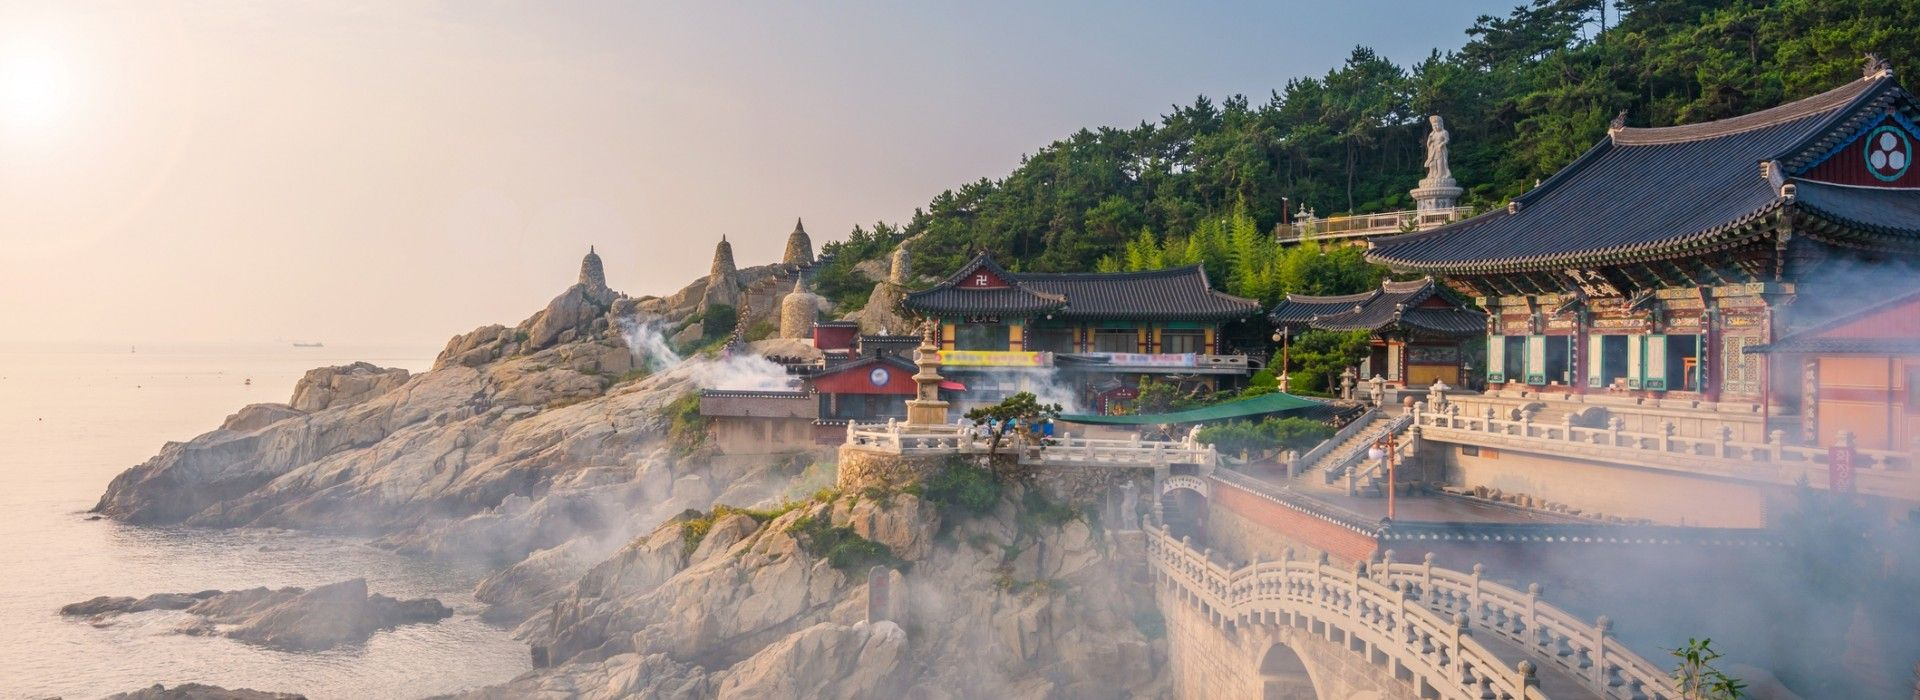 Cultural, religious and historic sites Tours in South Korea